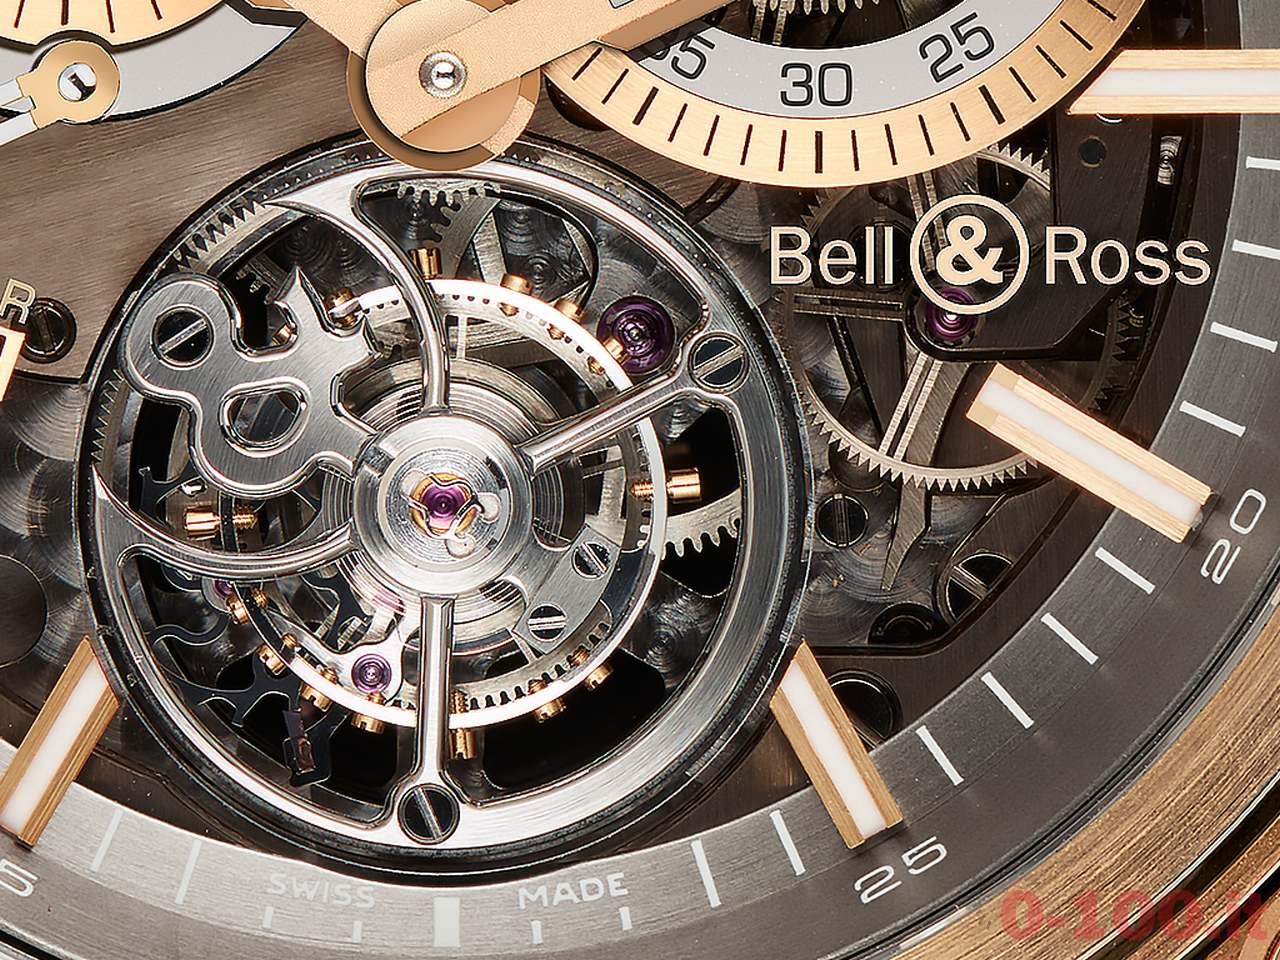 bell-ross-br-x1-chronograph-tourbillon-limited-edition-prezzo-price_0-1005